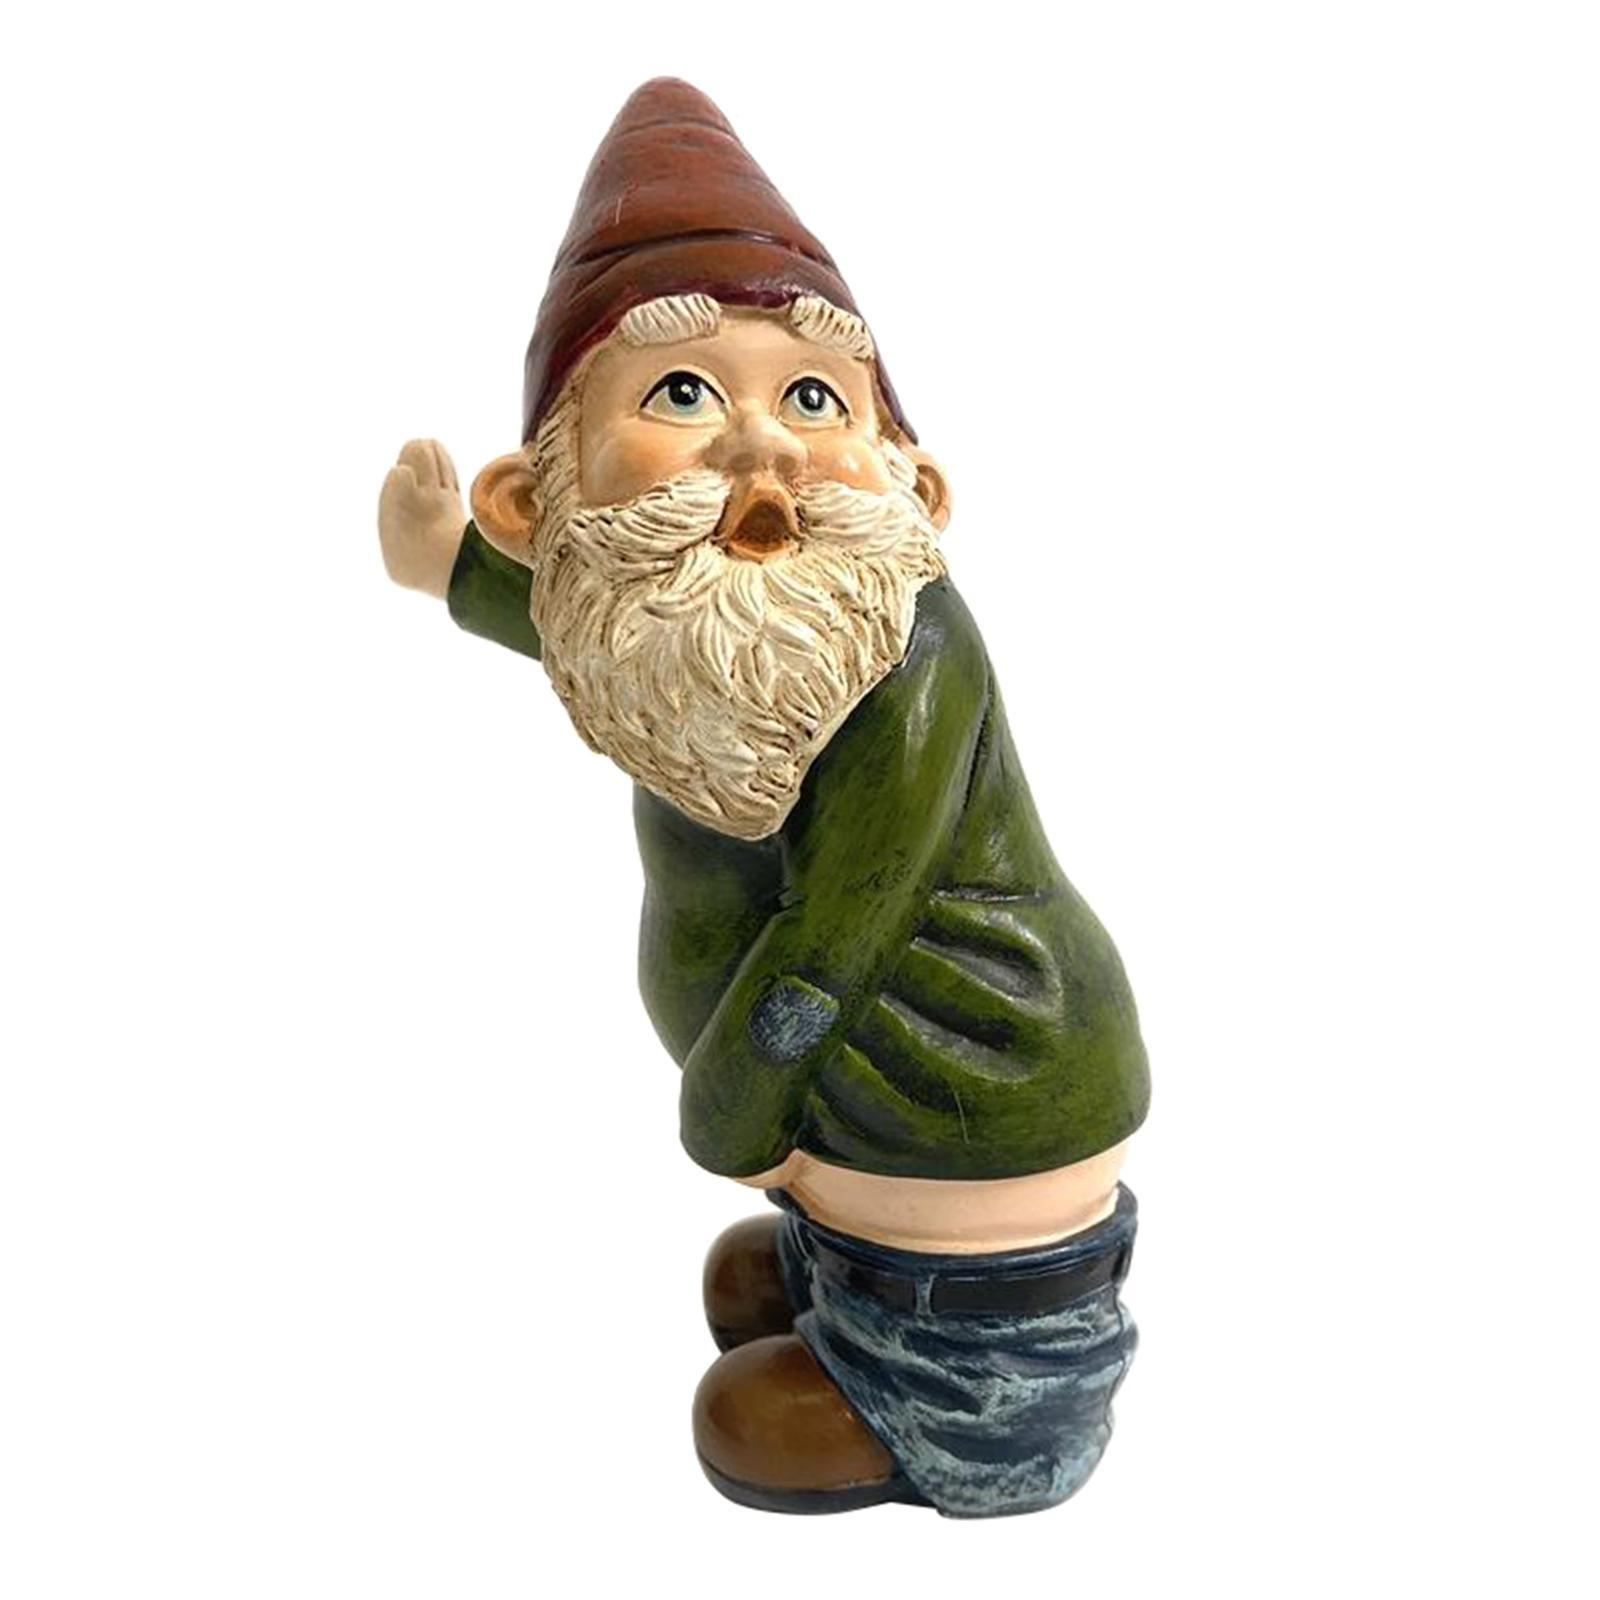 thumbnail 3 - Garden Gnome Statue Small Resin Lawn Gnome Scuplture Funny Indoor Outdoor Decor